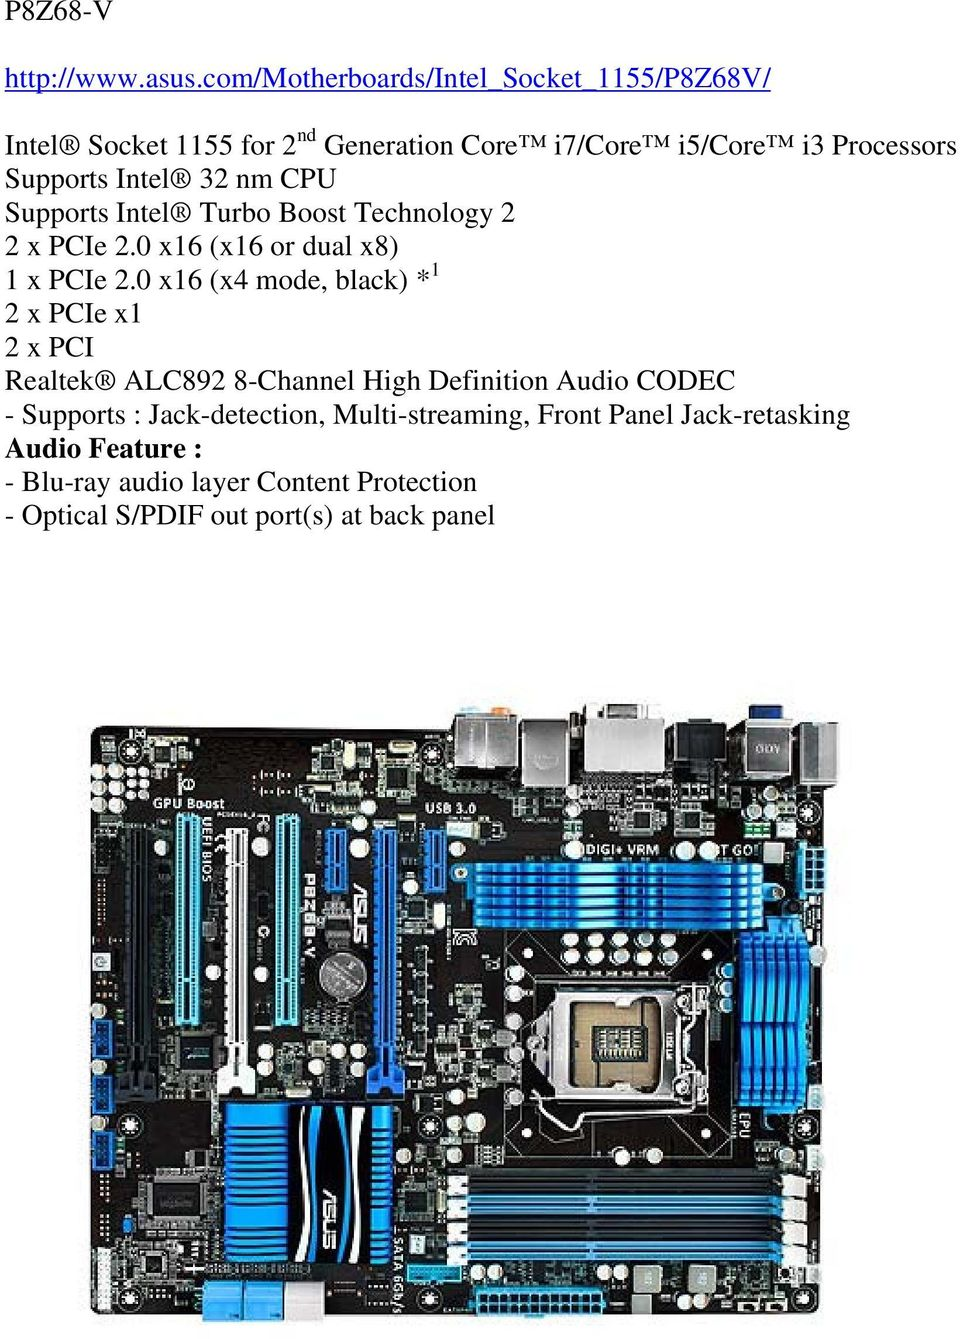 32 nm CPU Supports Intel Turbo Boost Technology 2 2 x PCIe 2.0 x16 (x16 or dual x8) 1 x PCIe 2.